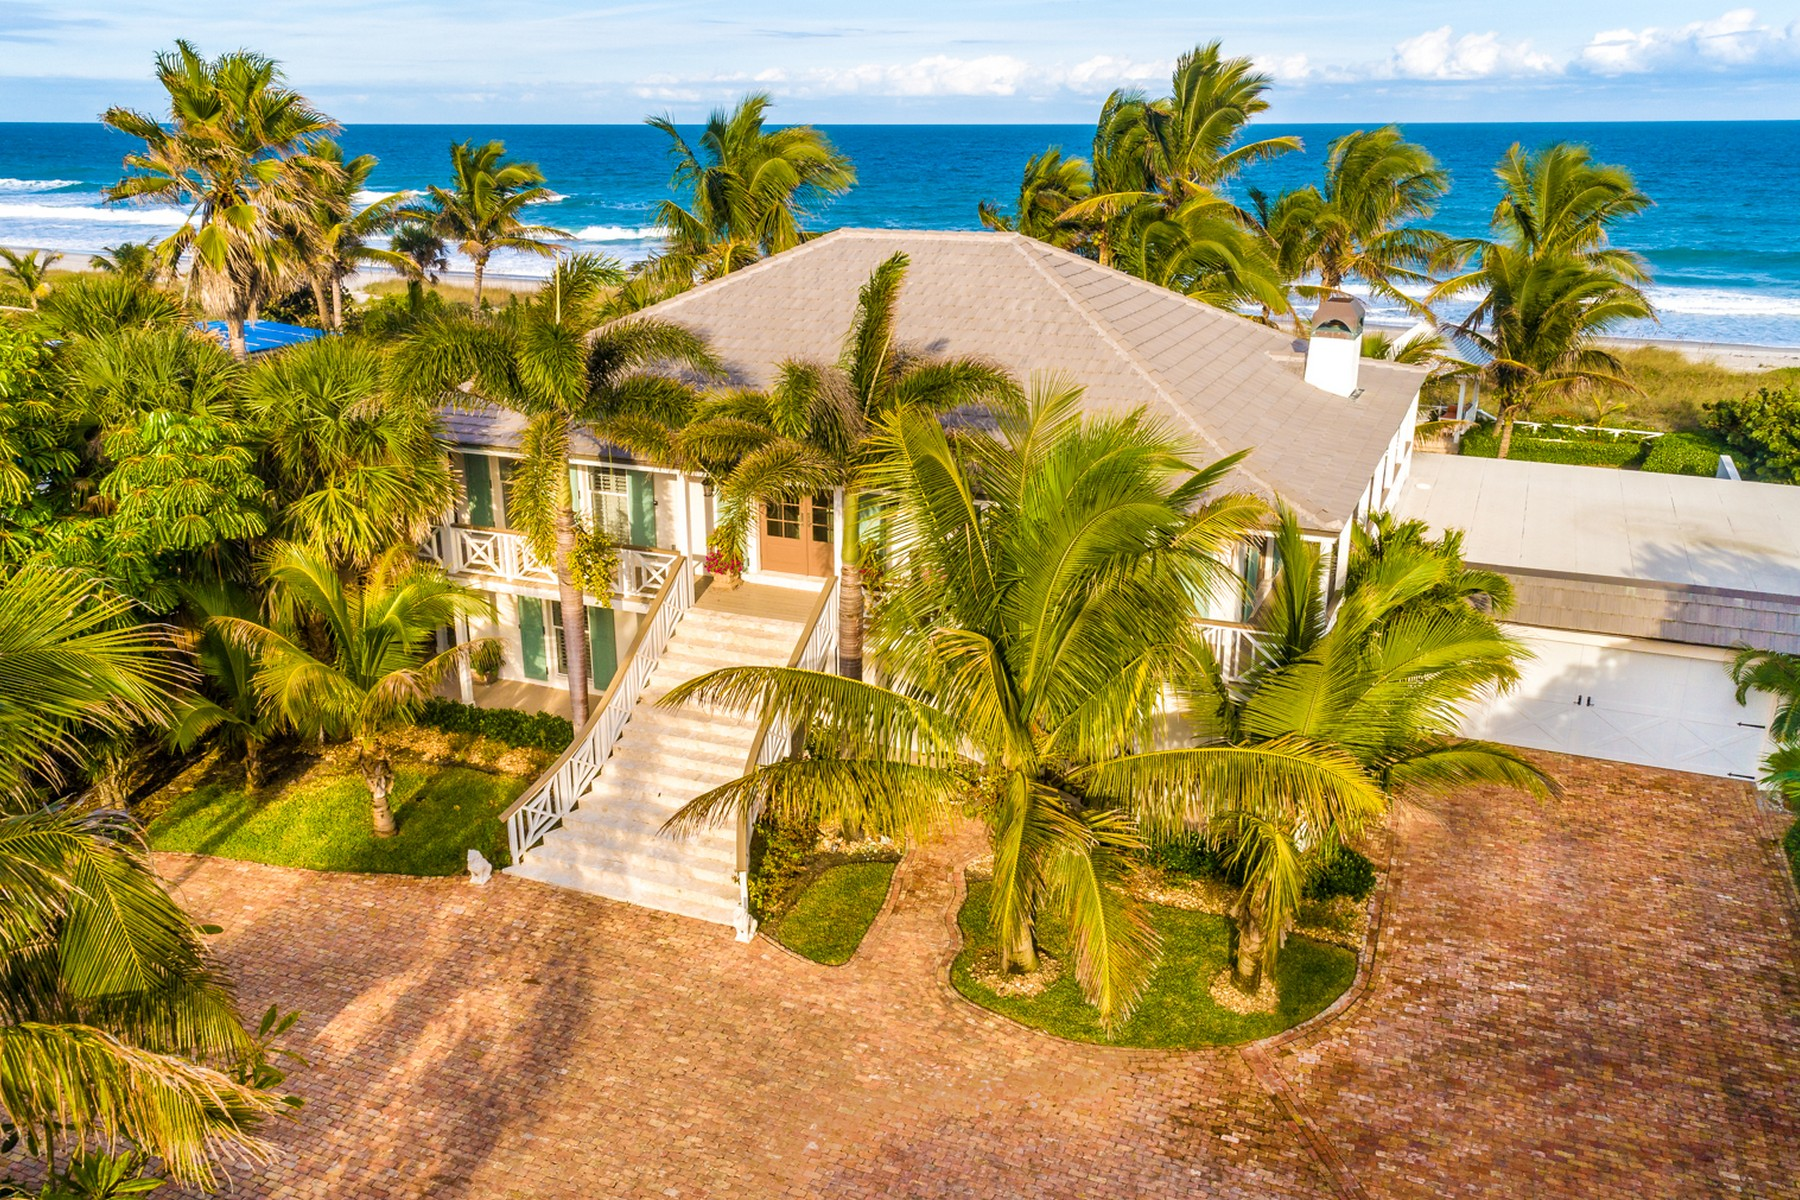 Beautiful Oceanfront estate property in rarely available Indialantic by the Sea. 1517 S Miramar Avenue Indialantic, Florida 32903 Estados Unidos